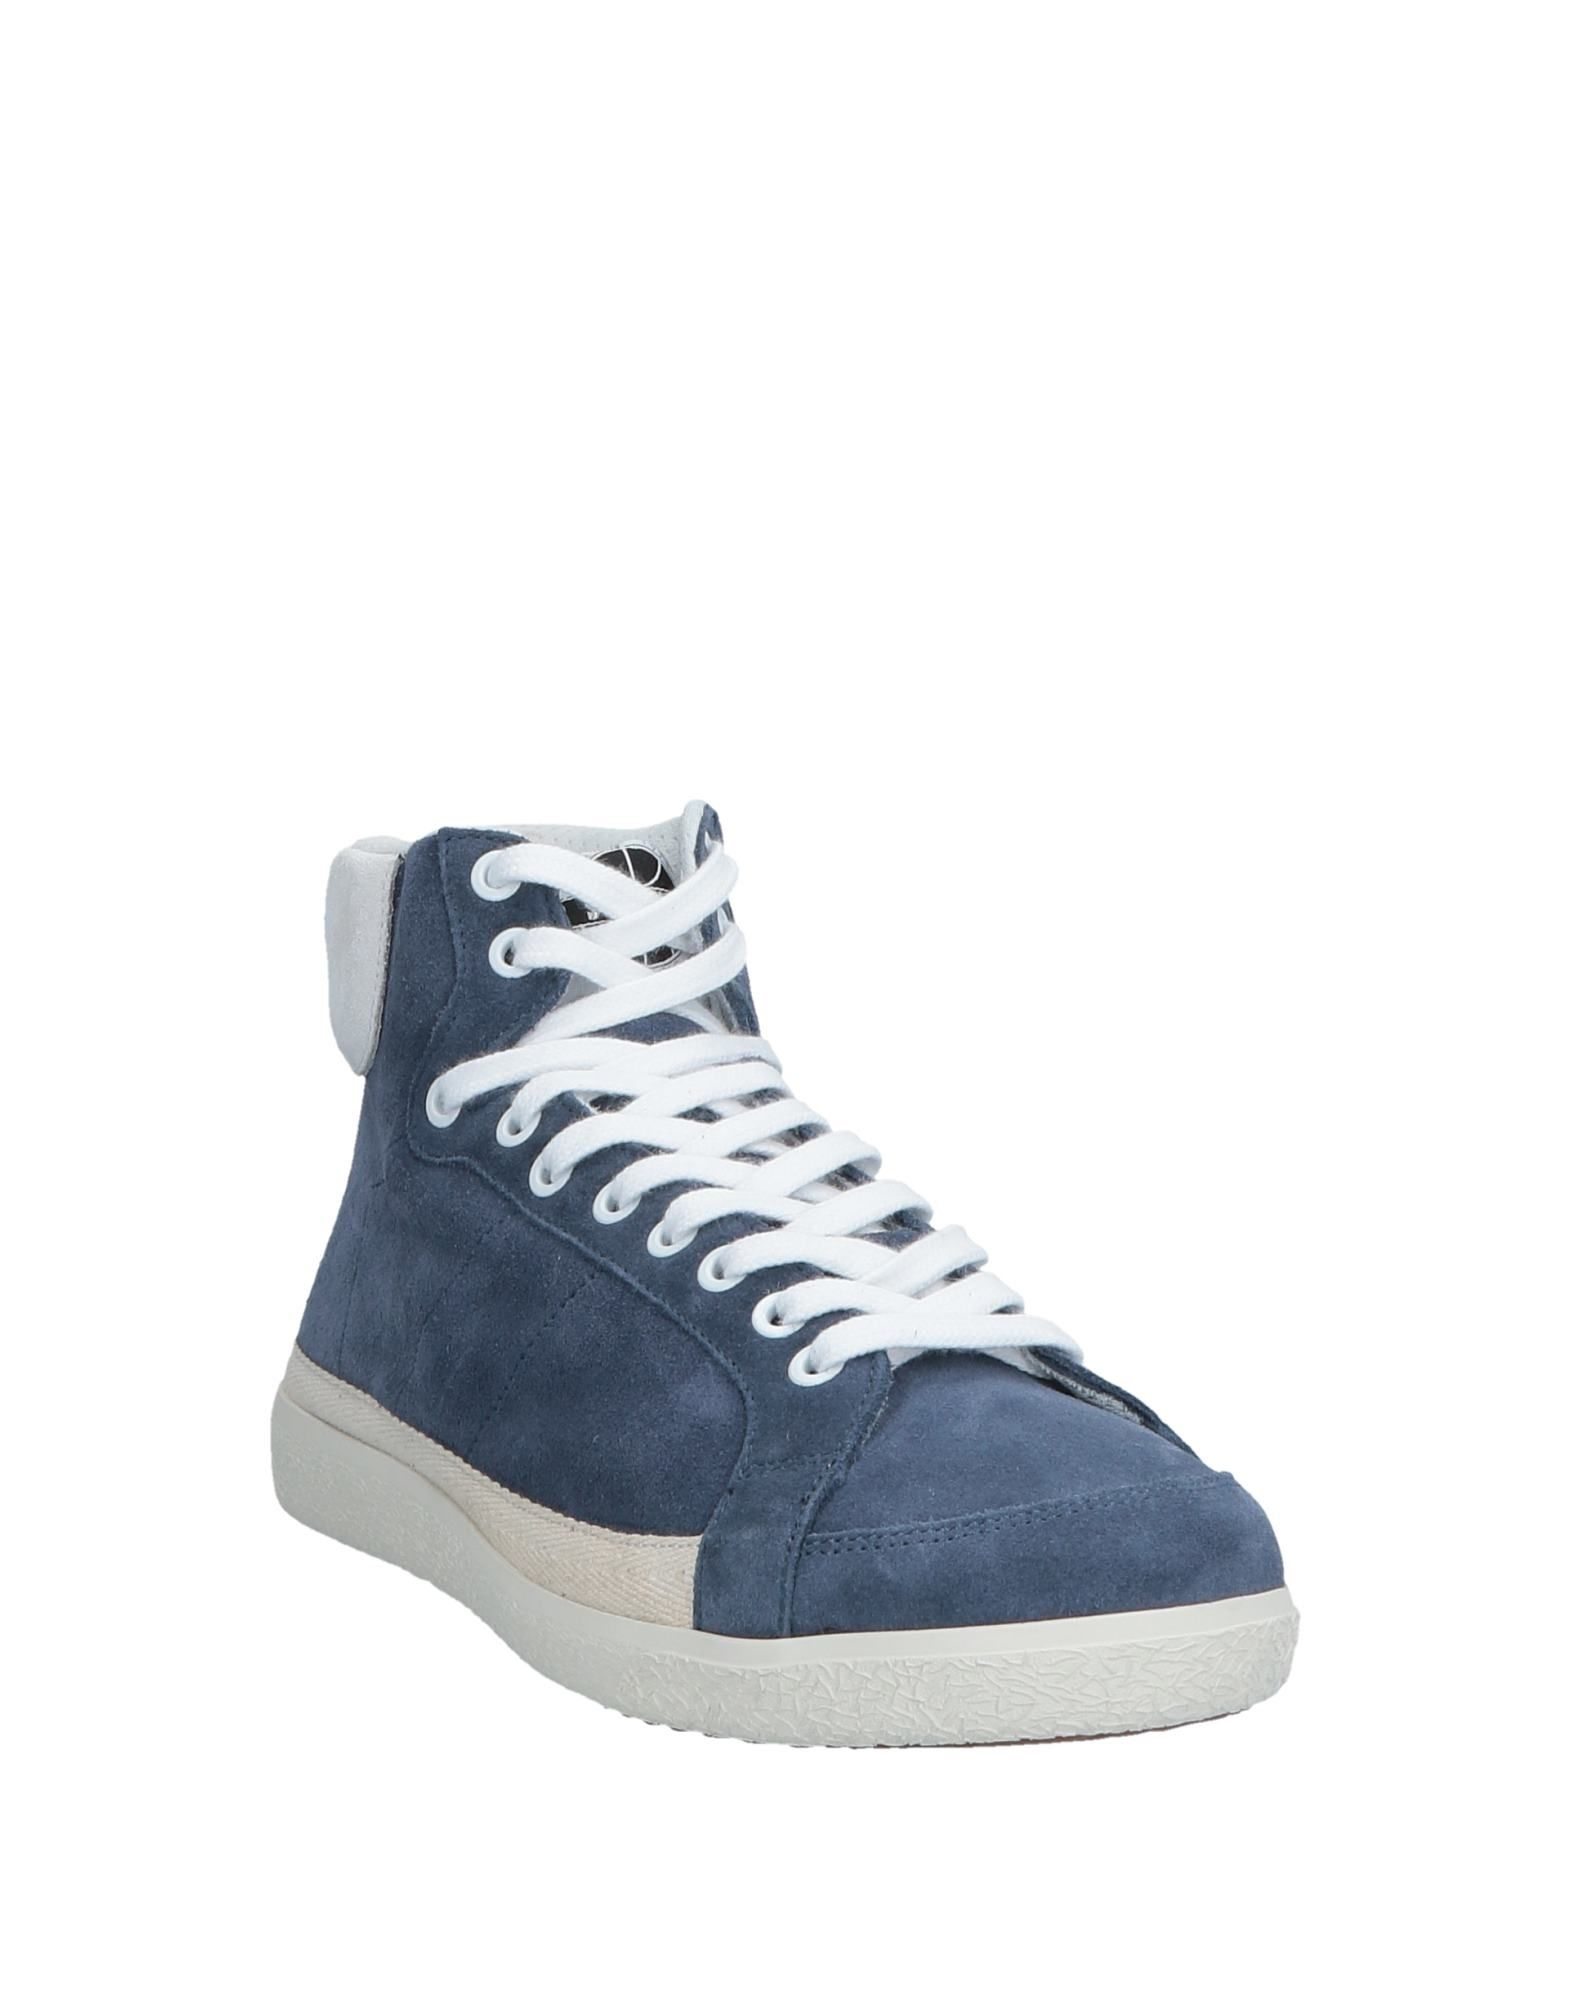 Pantofola D'oro Sneakers - Men Pantofola D'oro Sneakers online on on on  Canada - 11569713XH 57d061